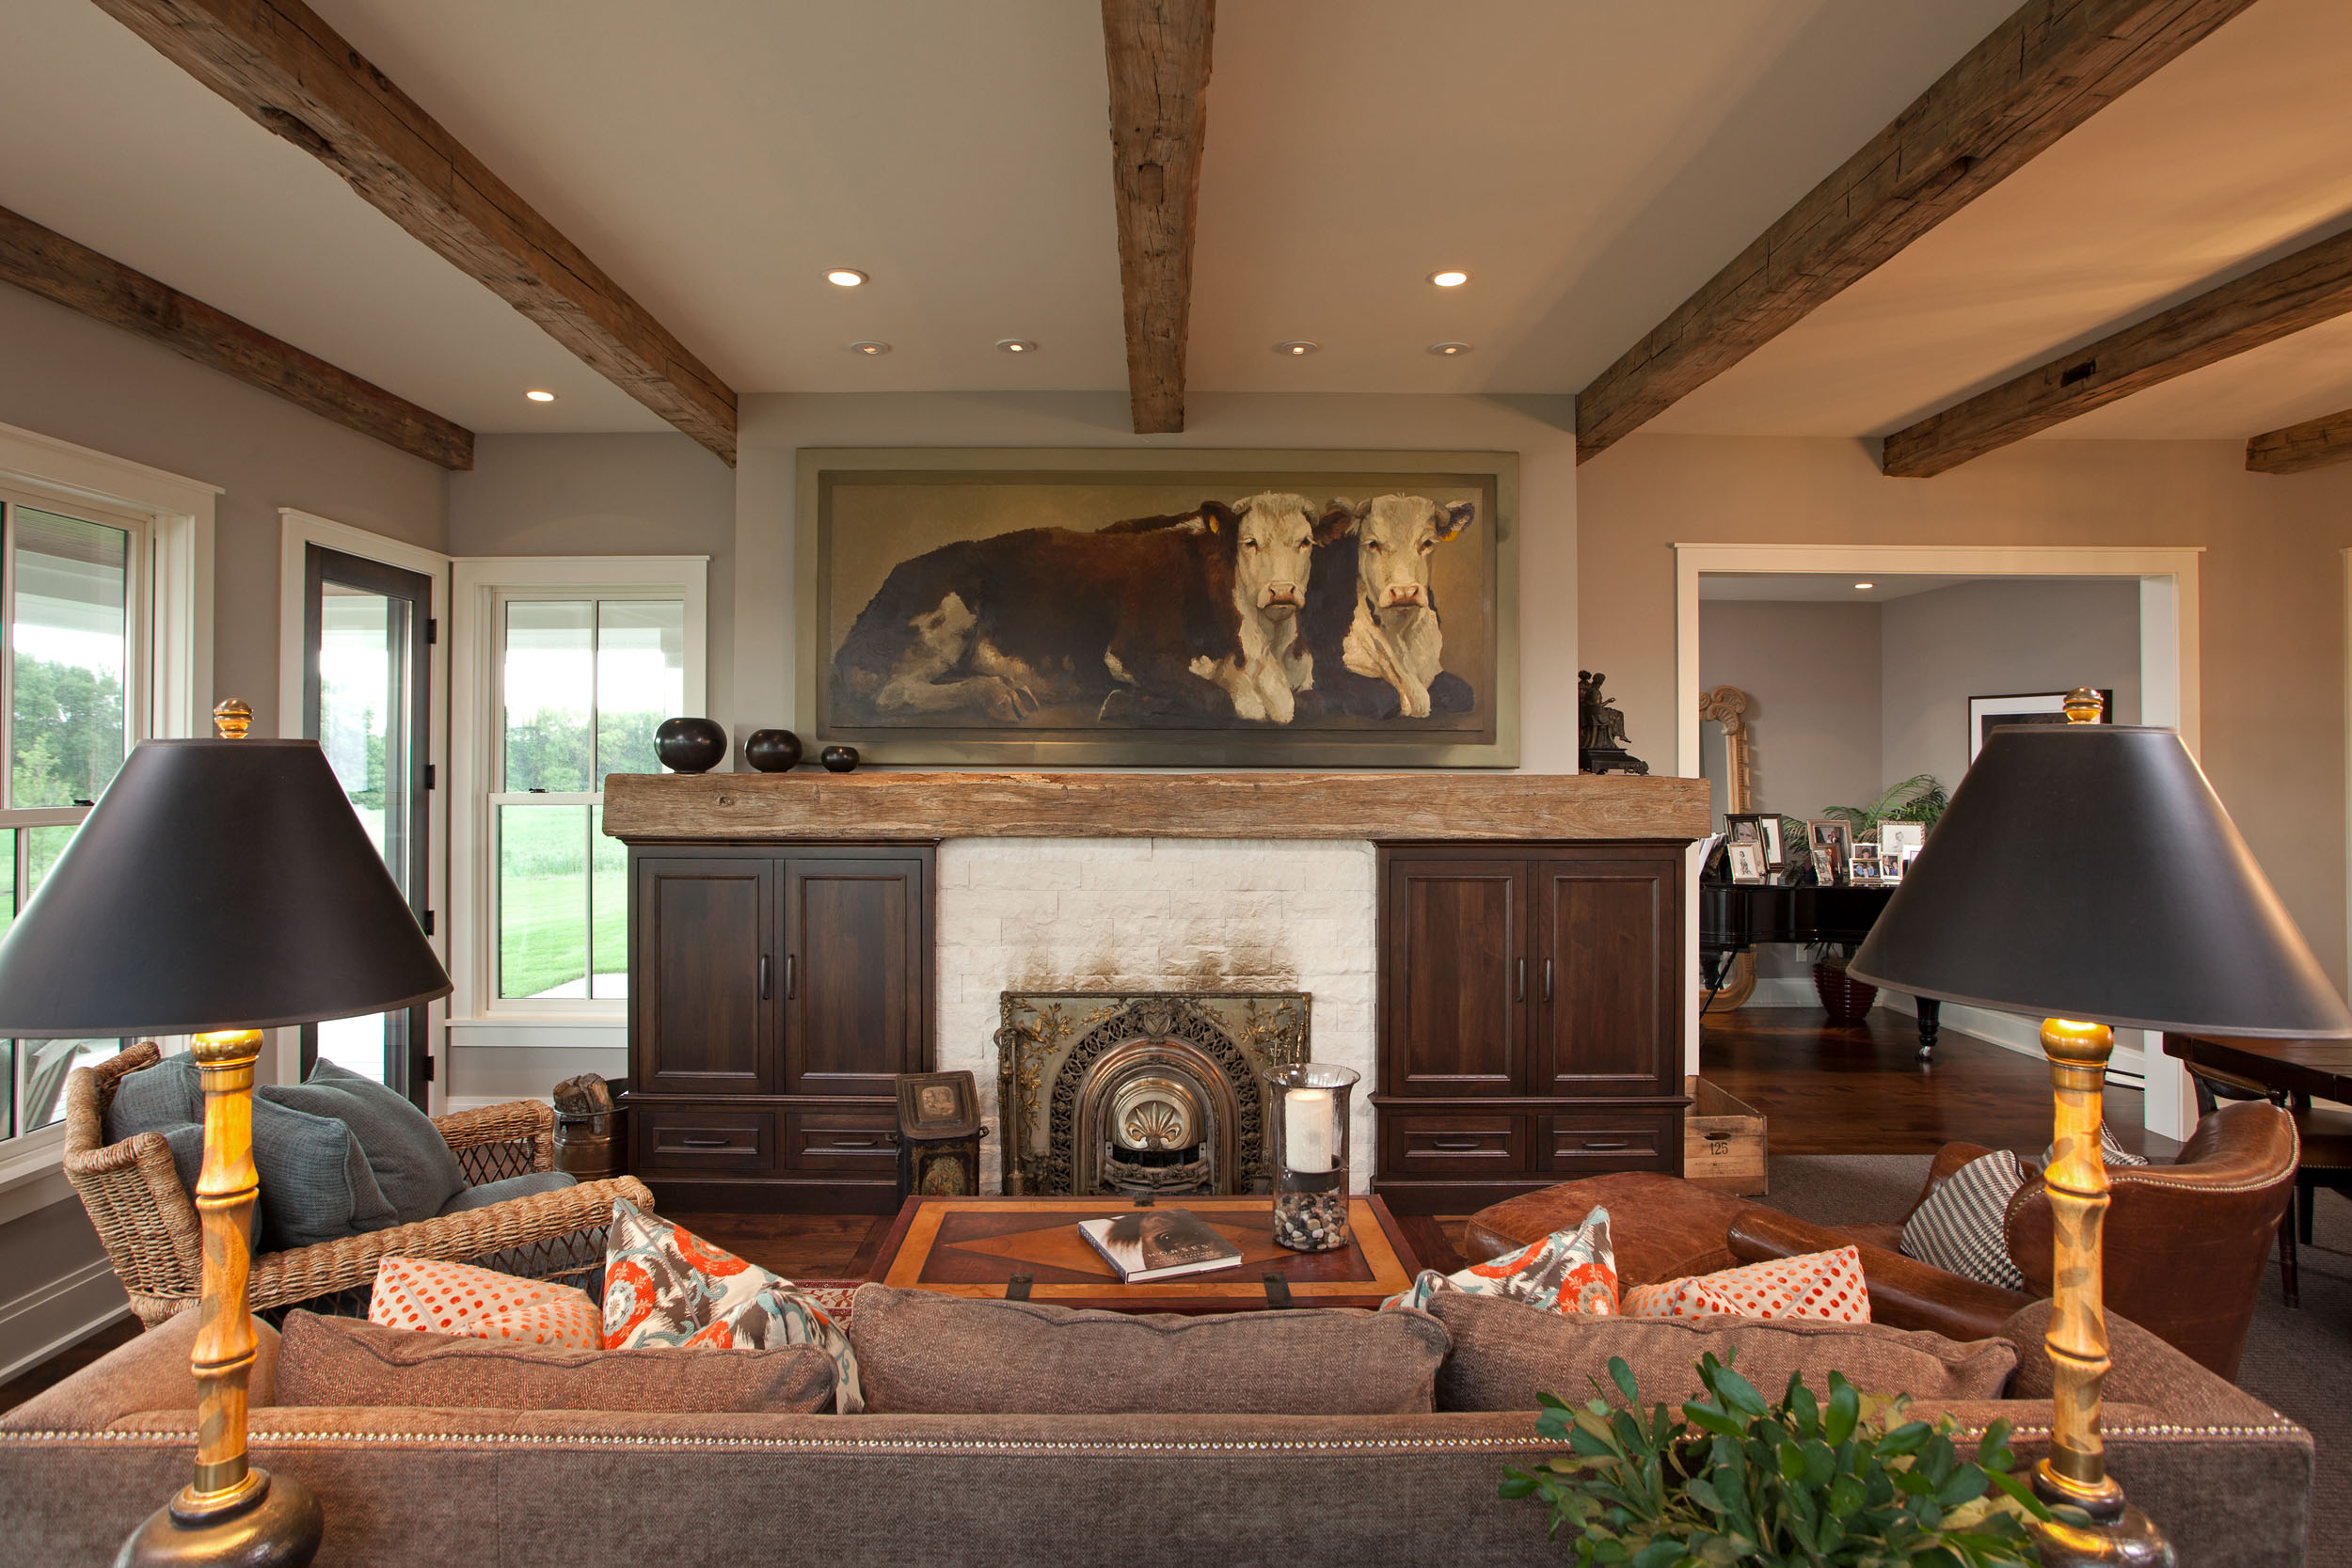 Modern Farmhouse Fireplace Image